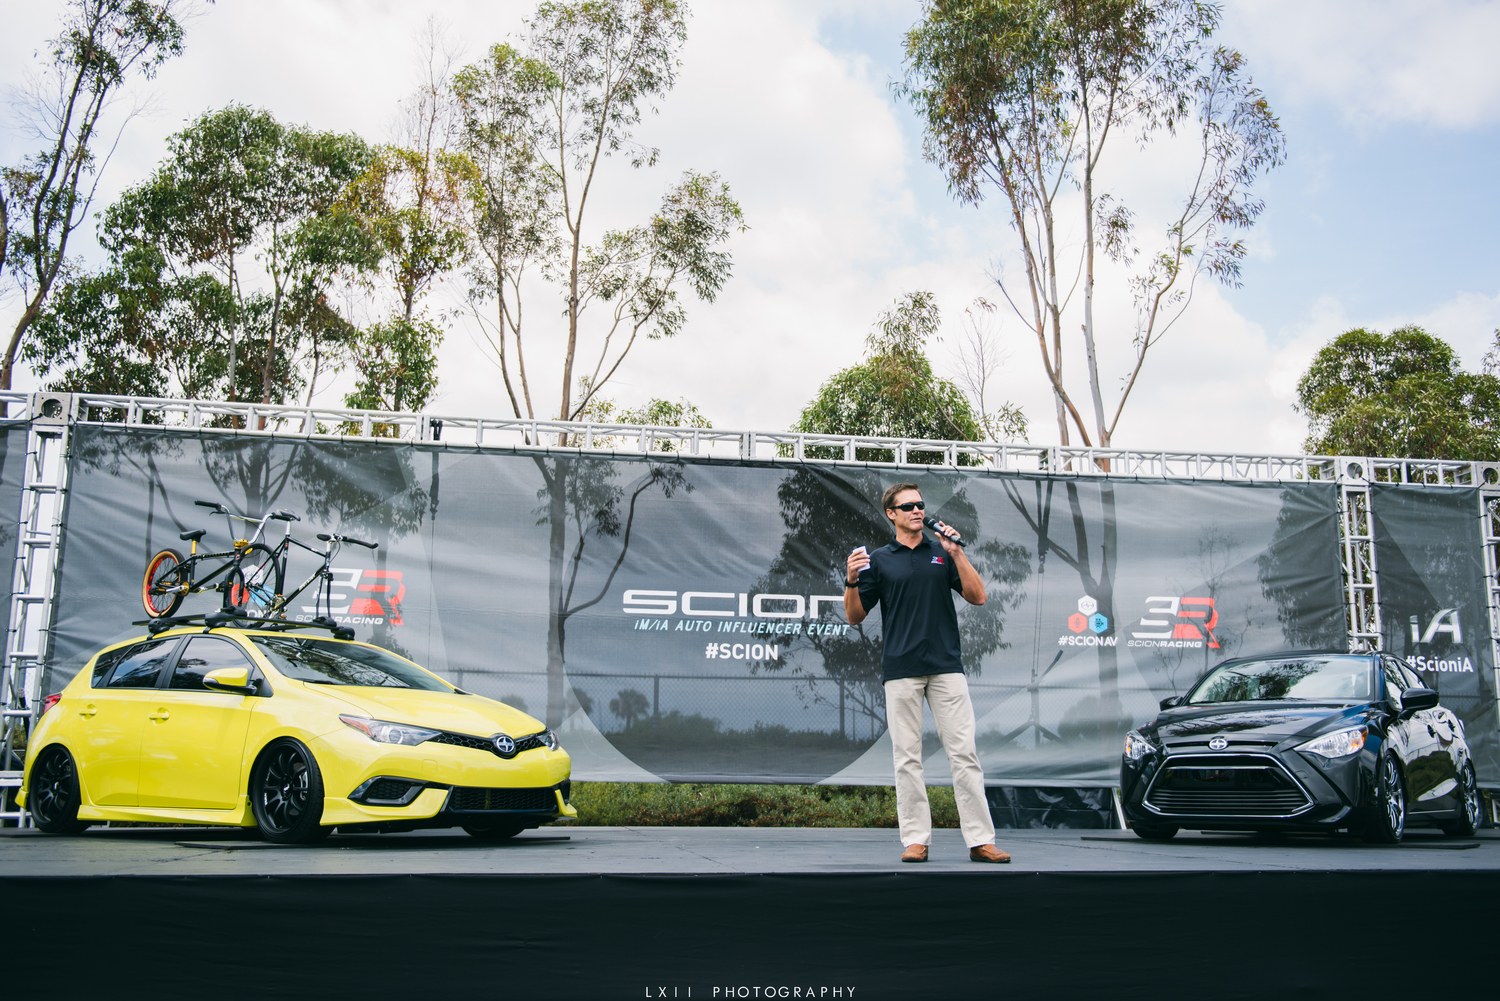 Scion Auto Influencer Event: The iA and iM